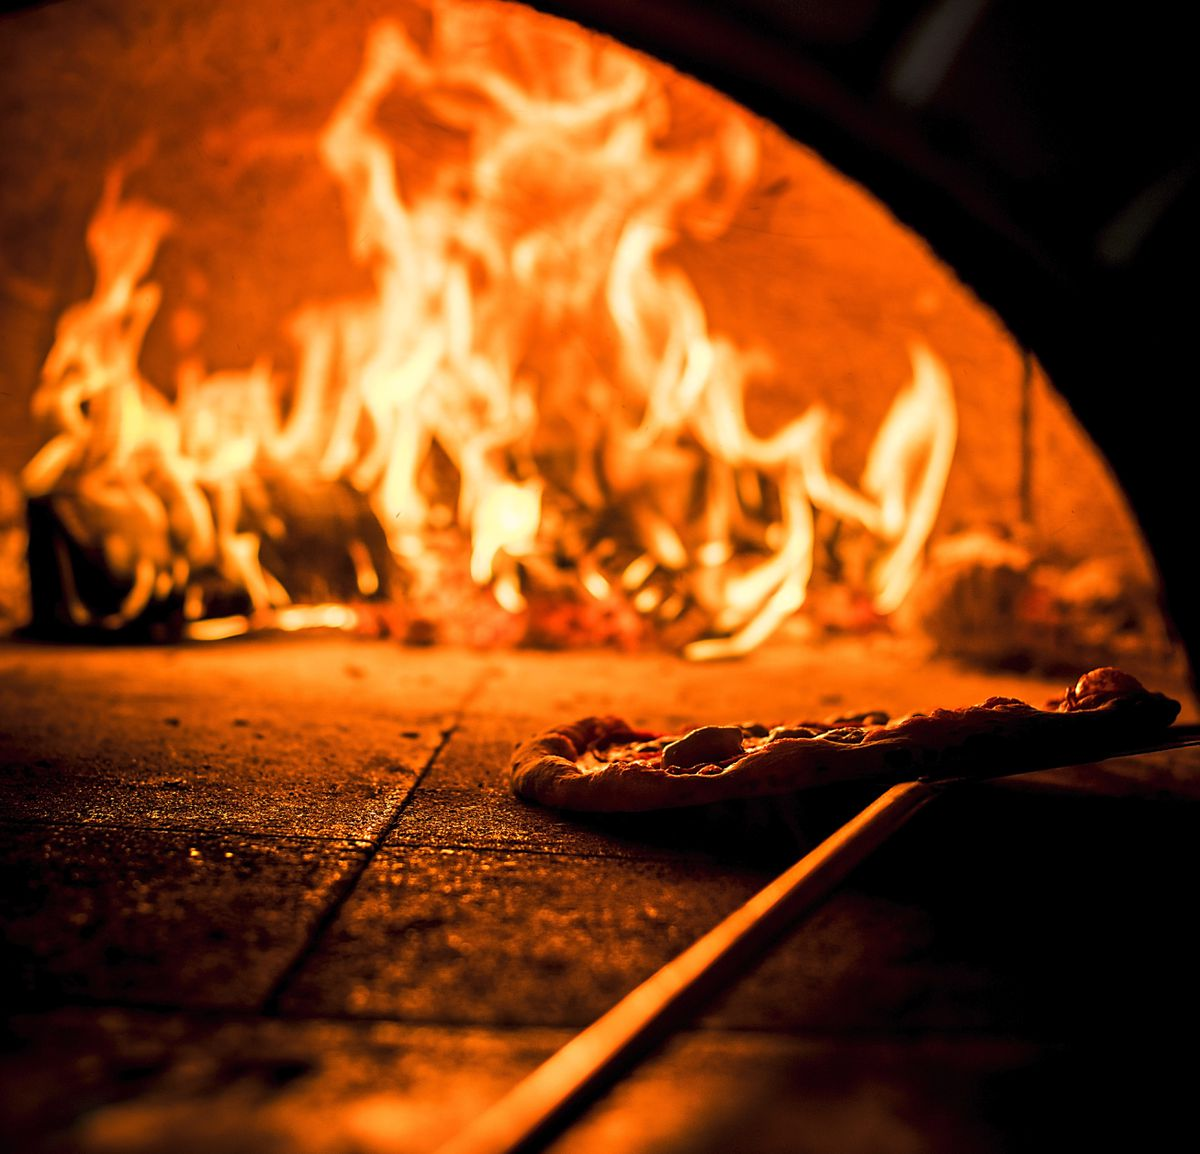 The pizzas are part-baked in wood-fired ovens